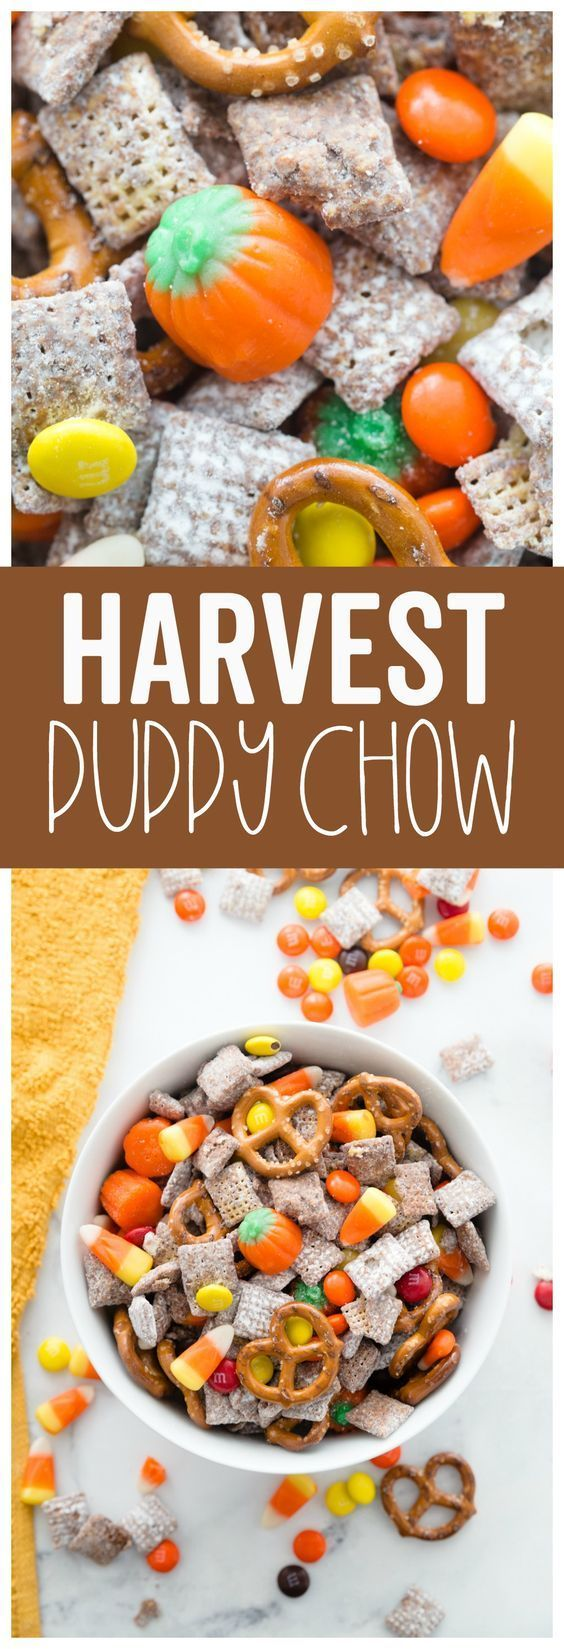 This Harvest Puppy chow is an easy fun fall treat! It combines the classic flavo…